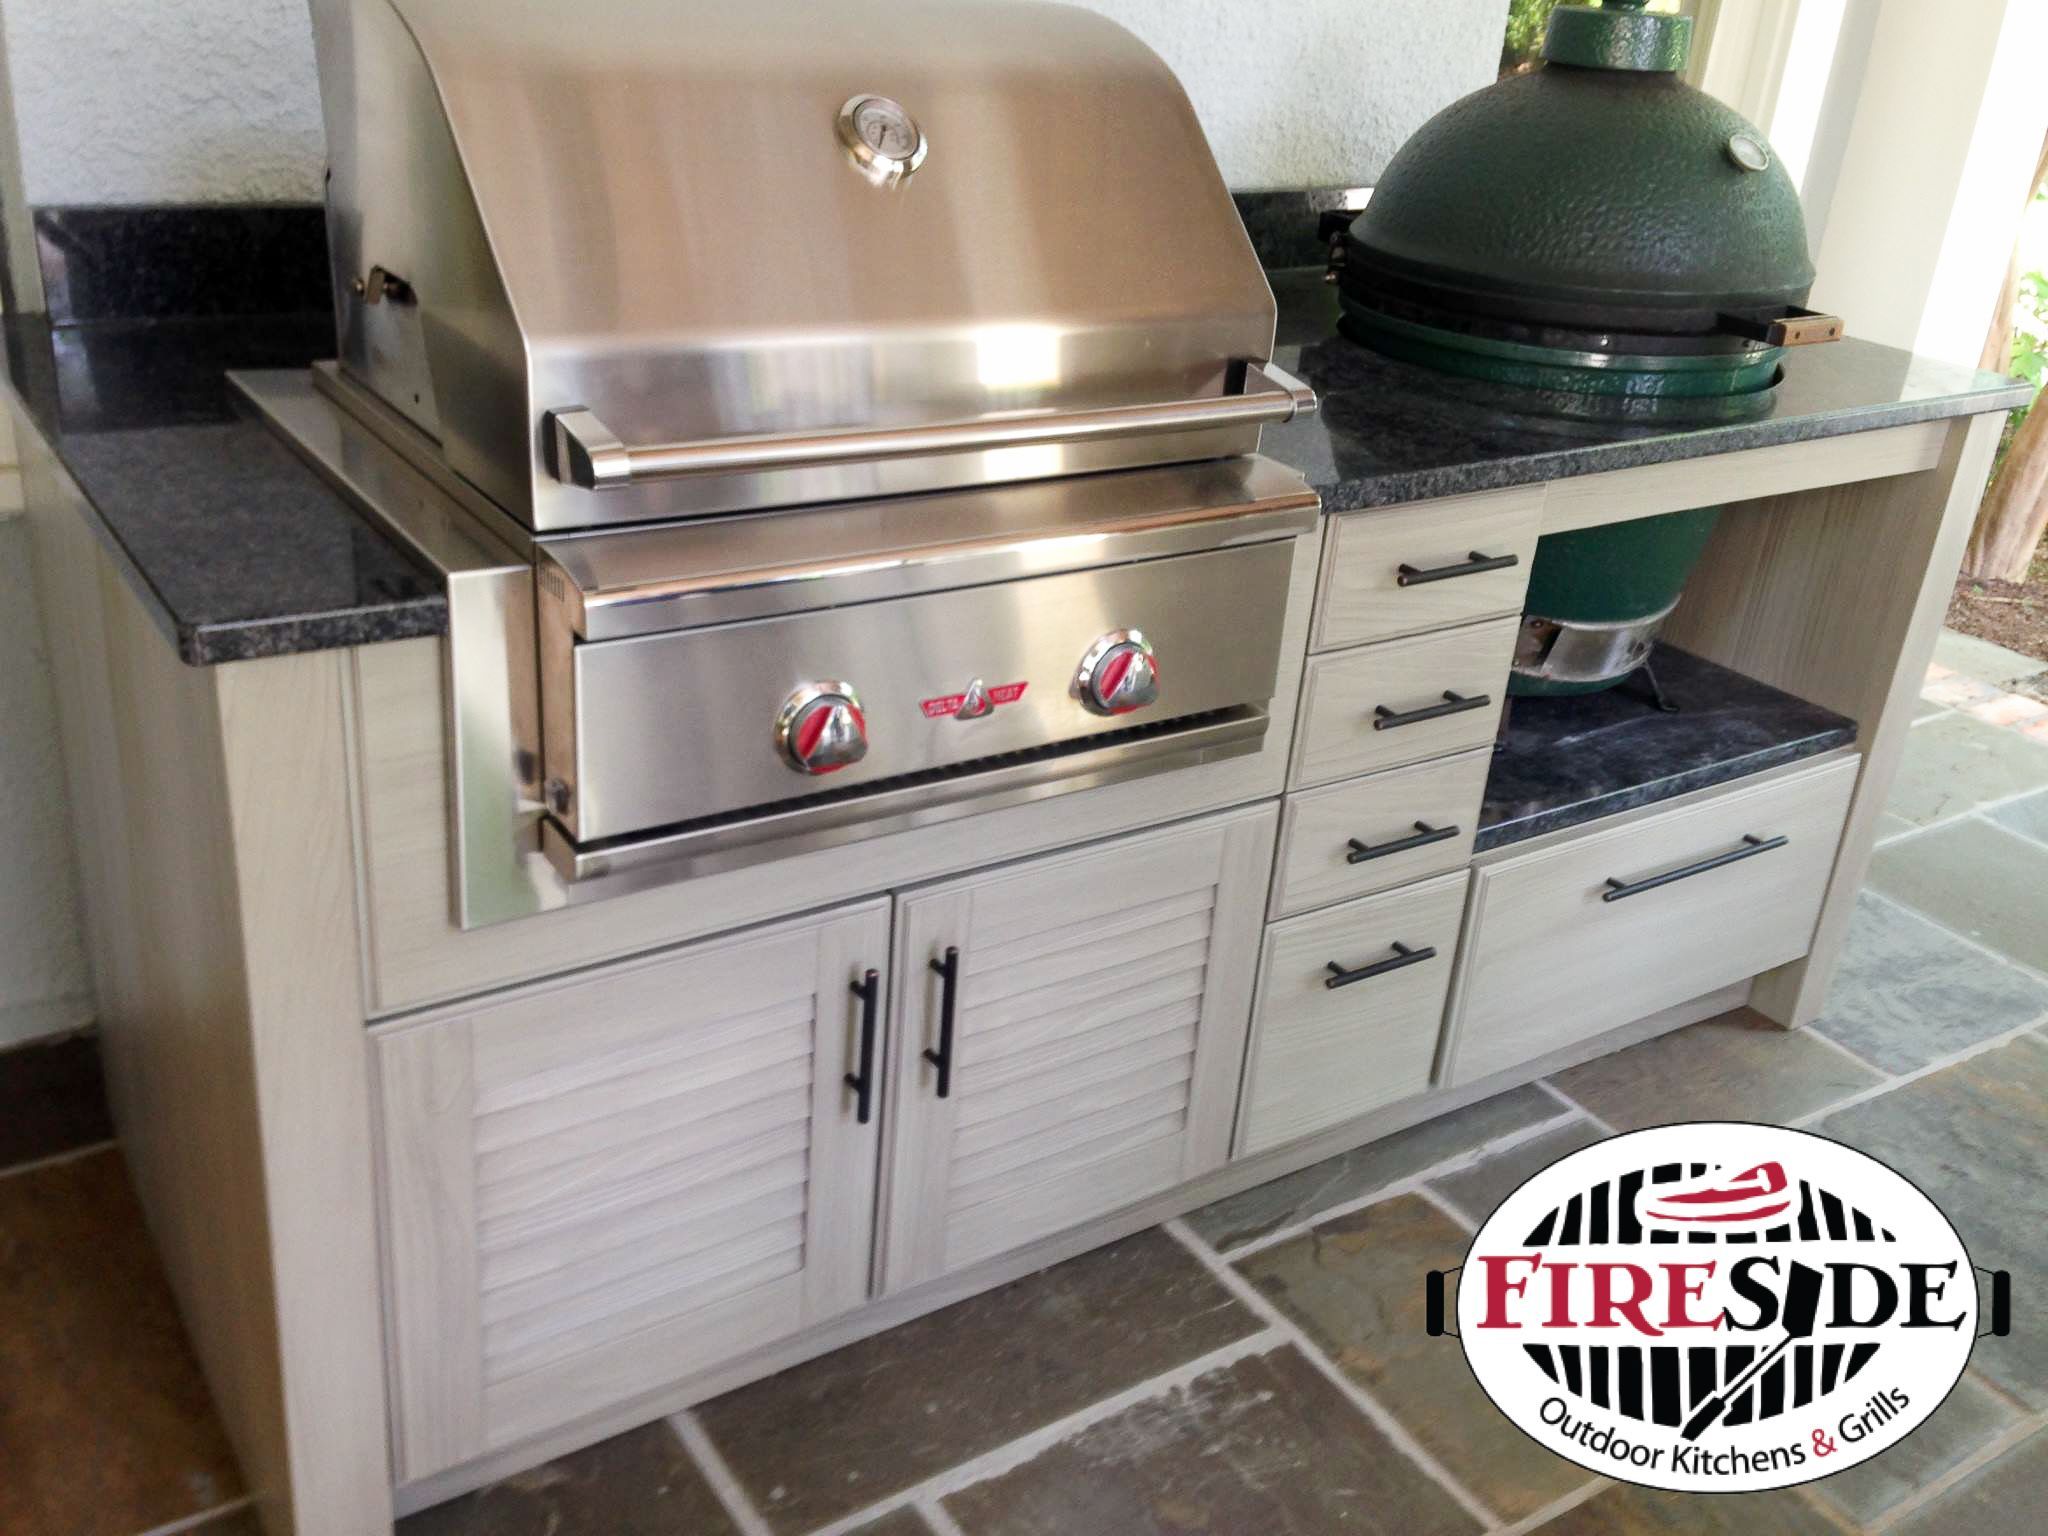 Naturekast cabinetry Delta Heat gas grill 26